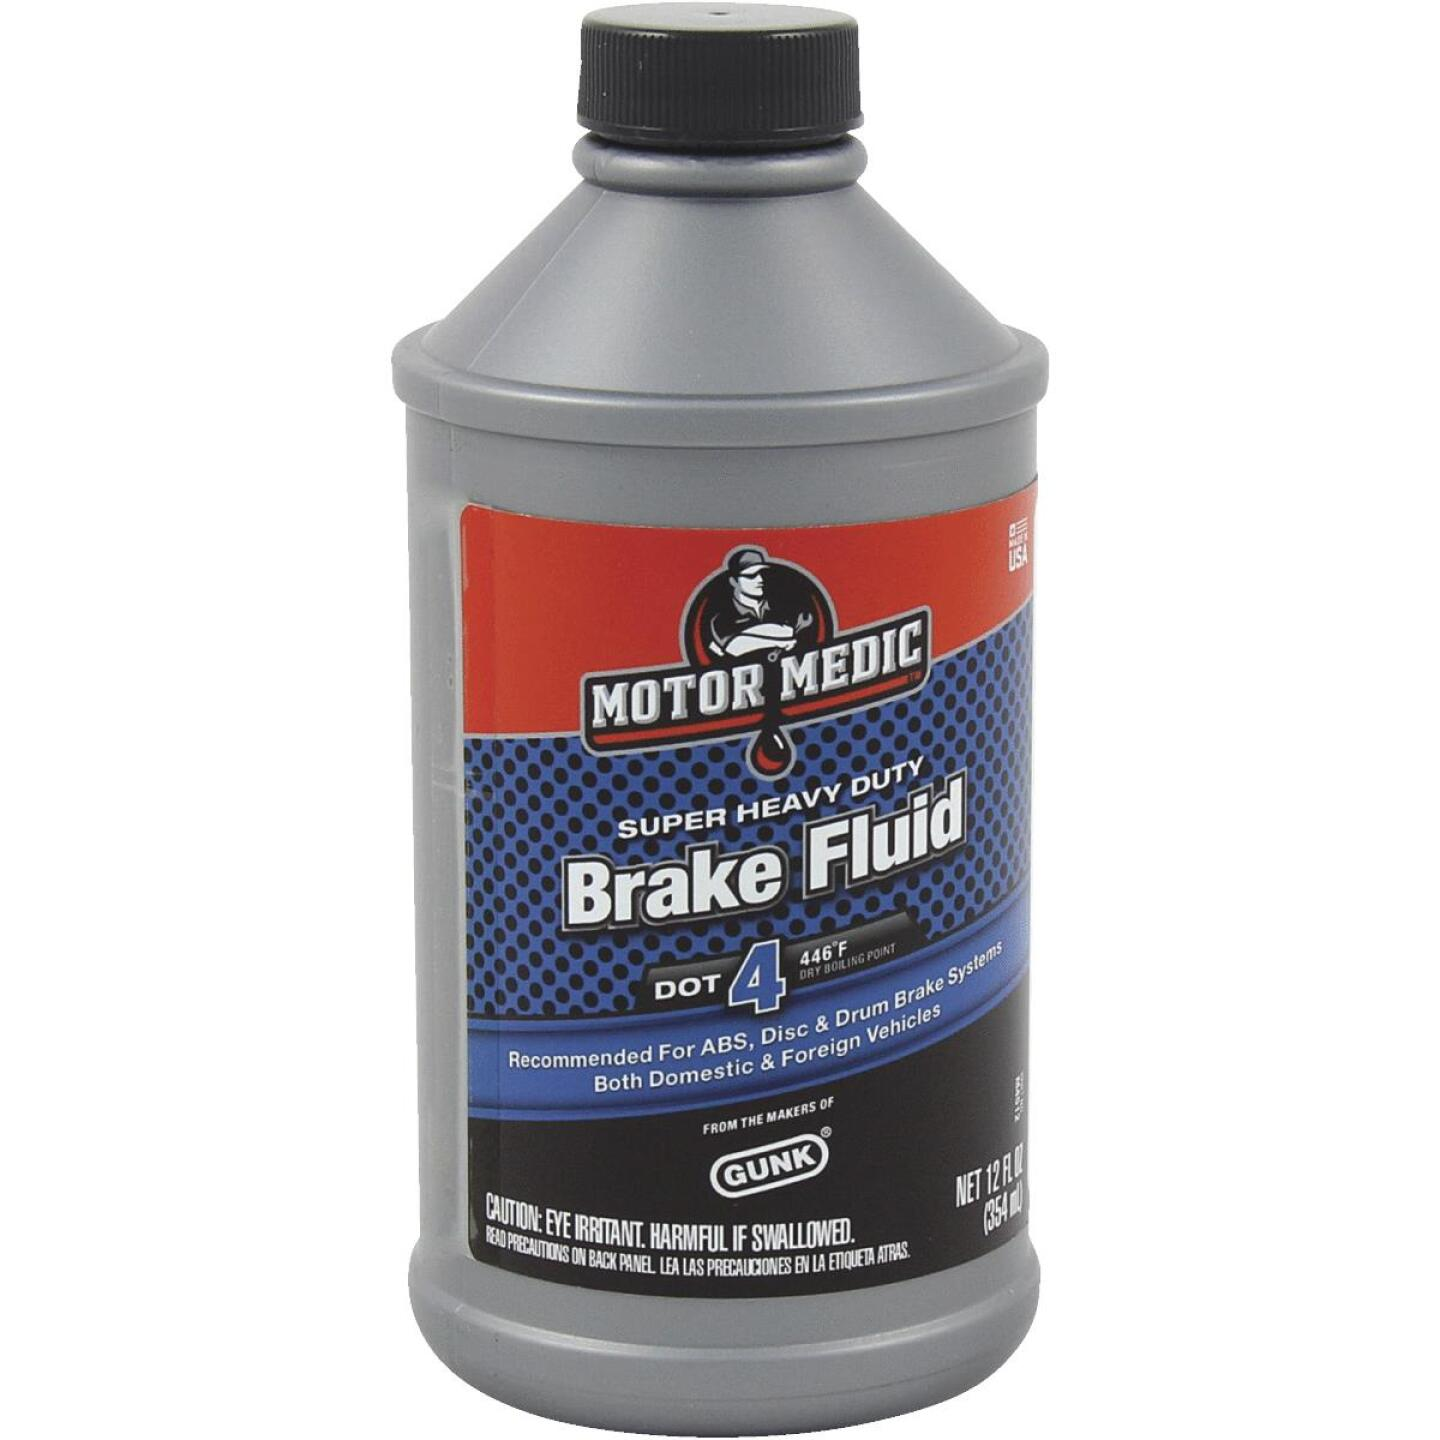 MotorMedic 12 Oz. Super Heavy-Duty DOT 4 Brake Fluid Image 1